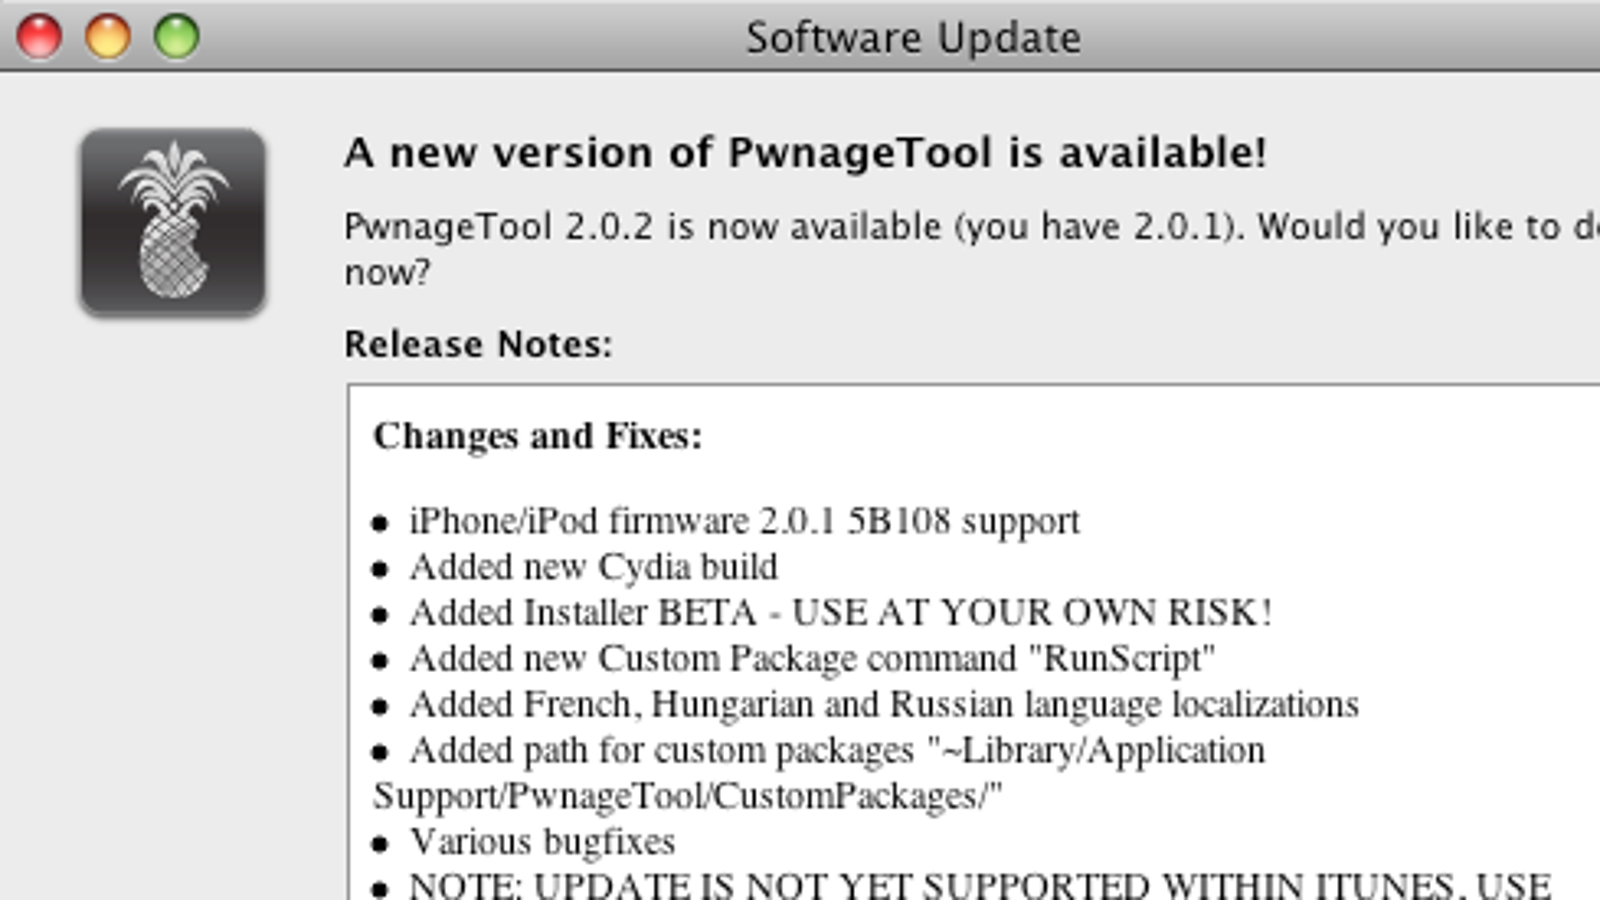 logiciel pwnage tool version 2.0.1